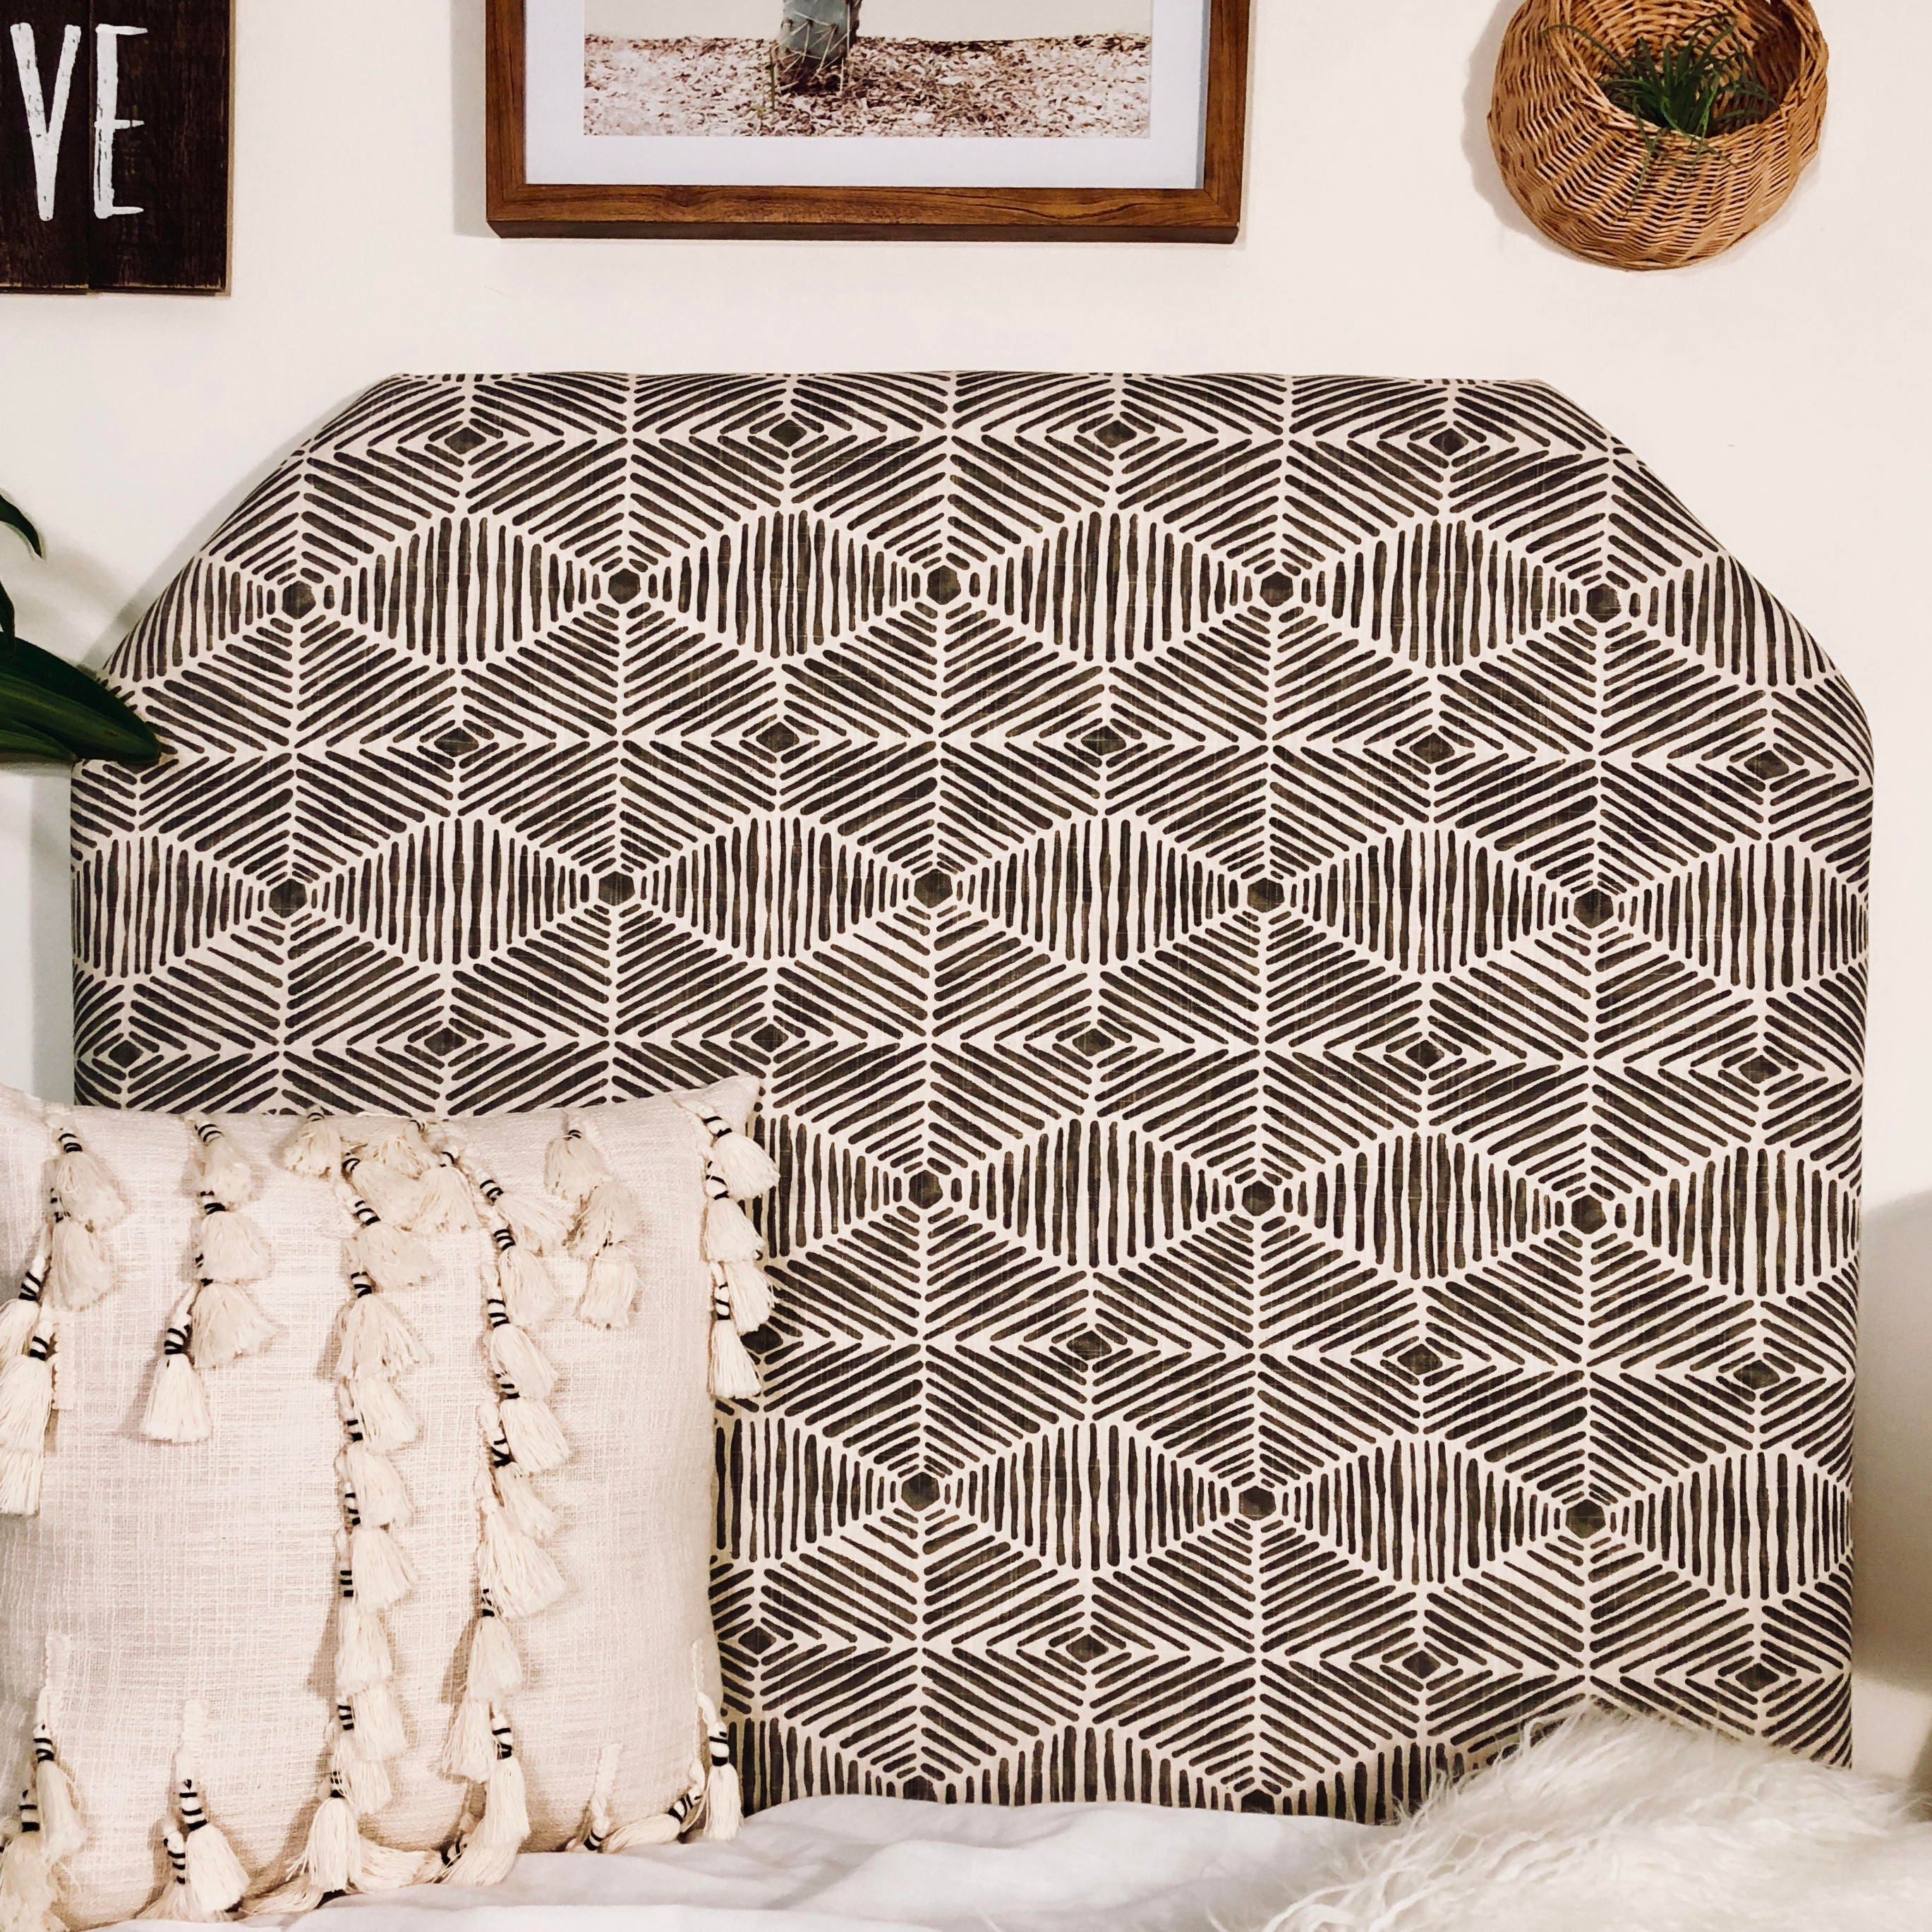 Dorm Room Twin Headboard   Grey Vintage Bohemian Pattern Upholstered  Headboard   Beveled or Arched Shape with Bed Attachment